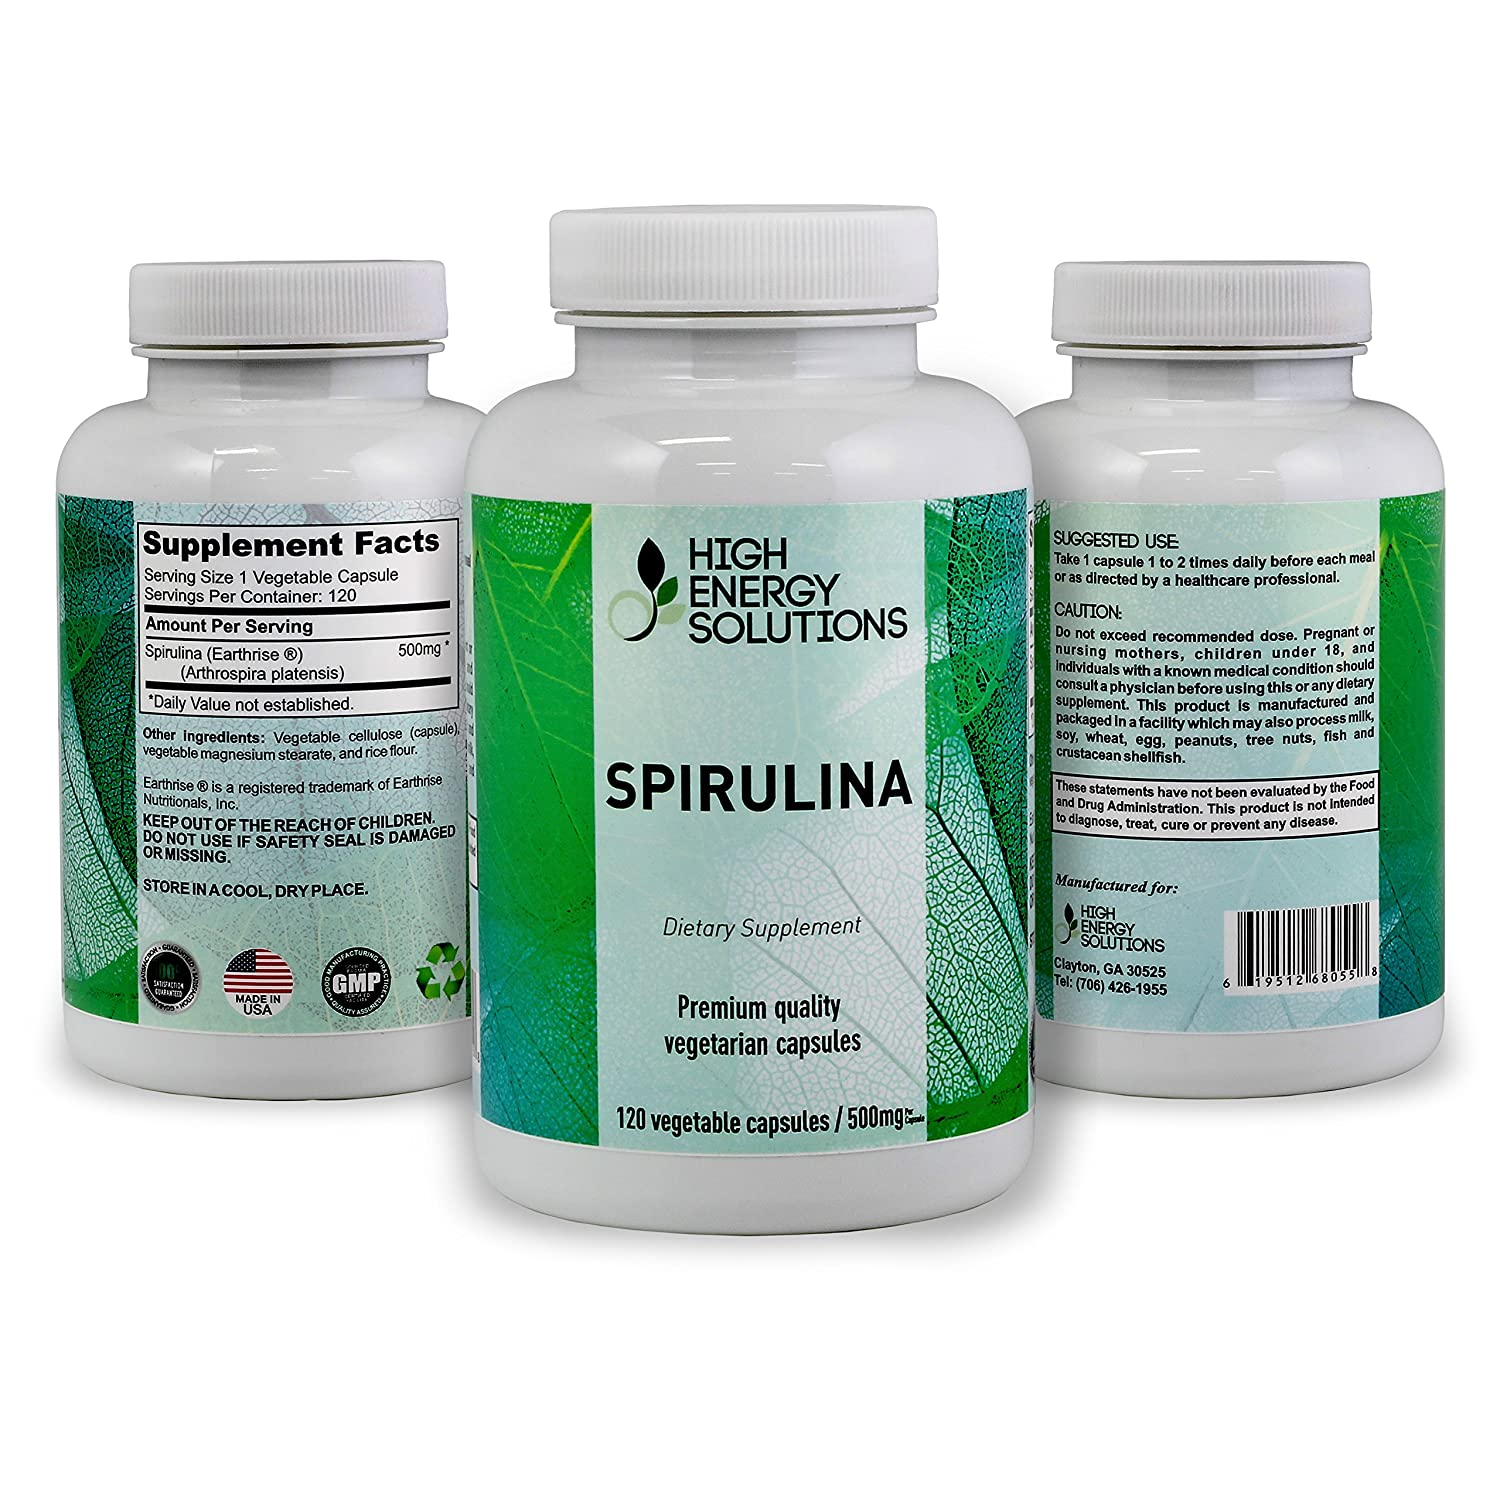 Amazon.com: HIGH ENERGY SOLUTIONS Spirulina Non - GMO - 500 MG - 120 Veggie Capsules 100% Vegetarian & Non-Irradiated - Zero Pesticides - Additives ...